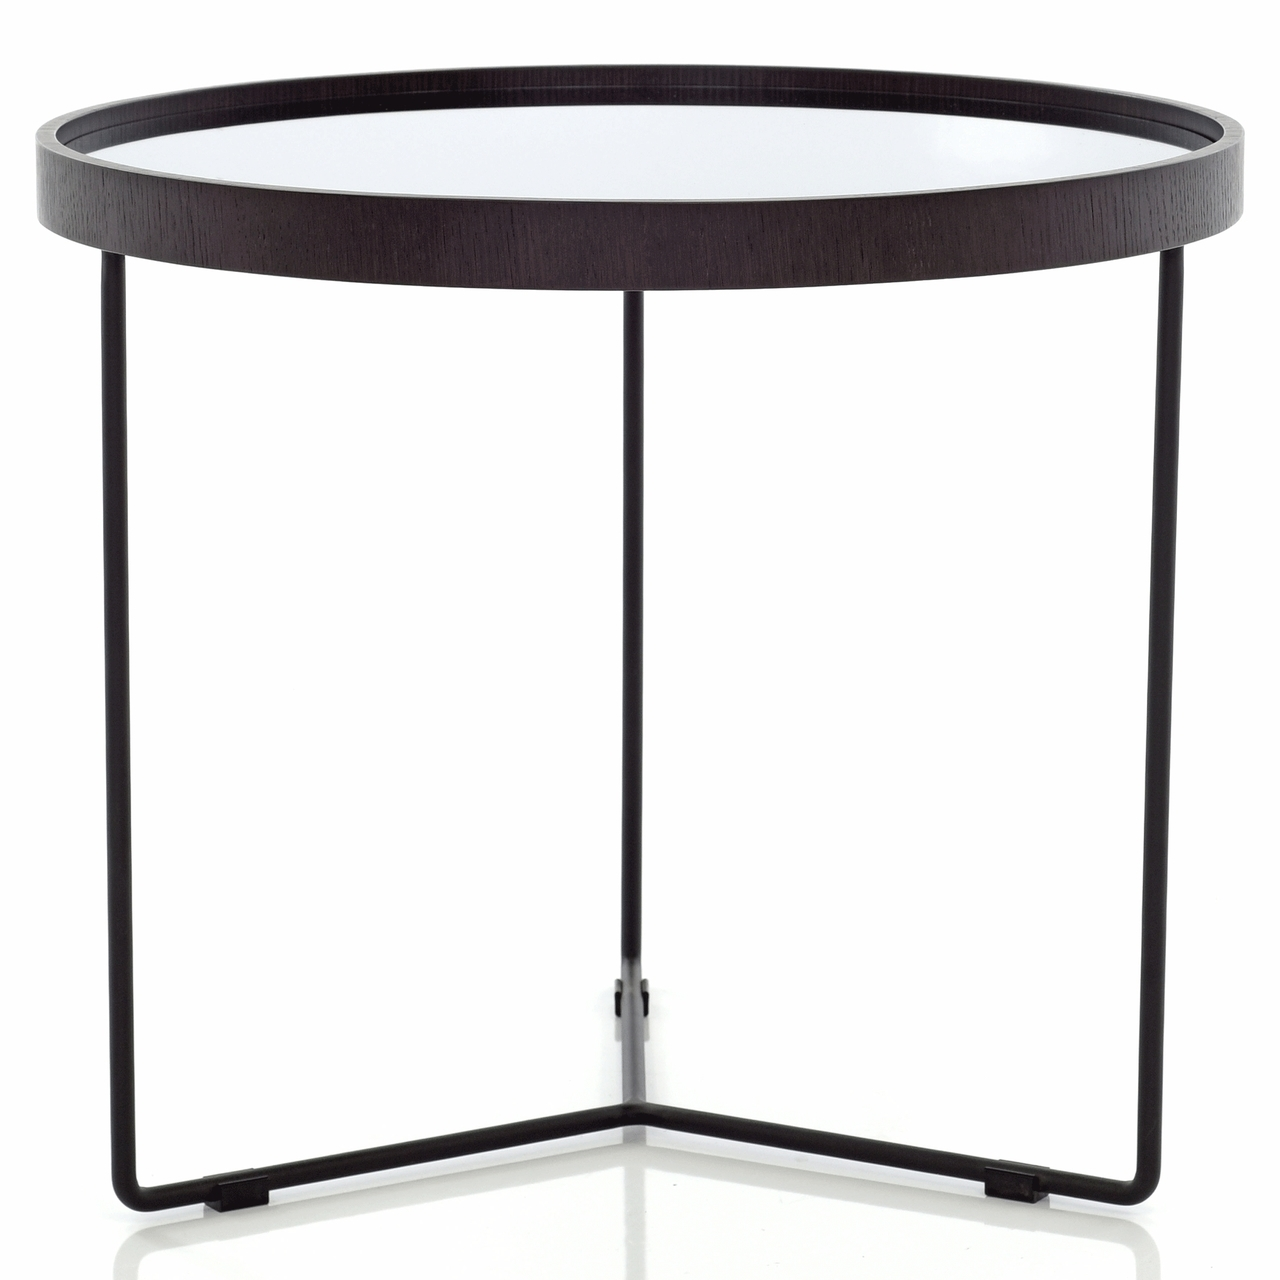 versa side accent table grey mirror cantoni and leather sectional edmonton small garden patio decor kmart dining mirrored storage cabinet round outdoor cocktail narrow sofa pier